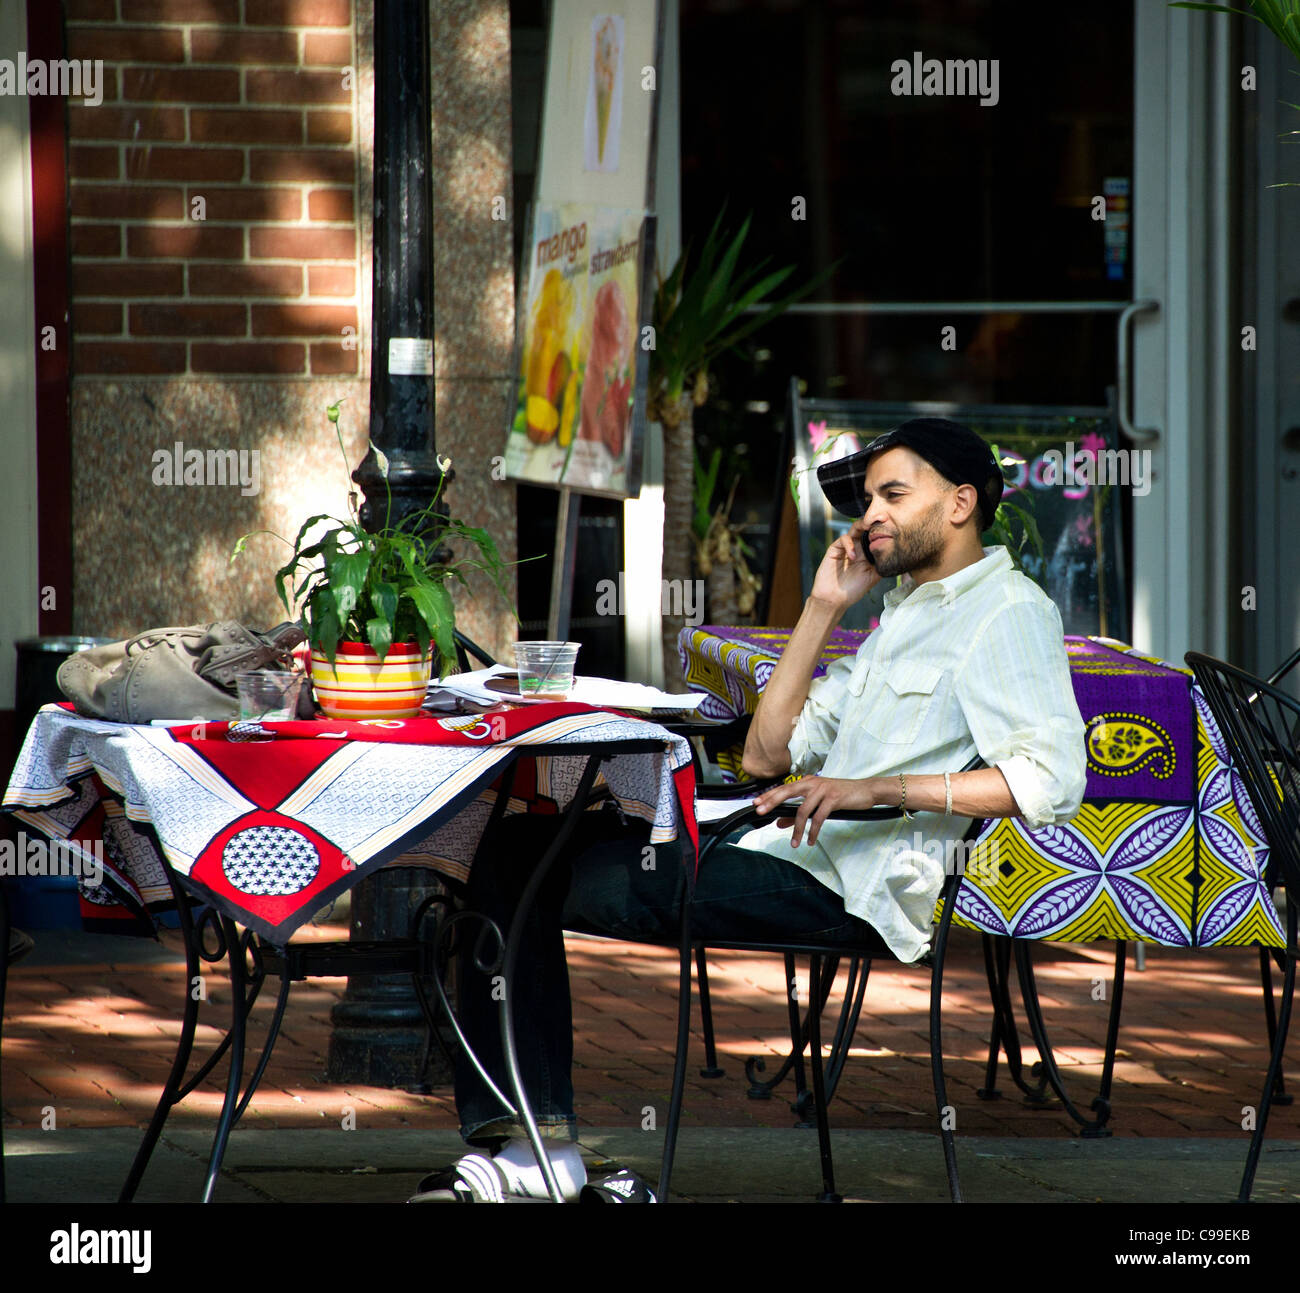 Young urbanite at outdoor cafe. - Stock Image